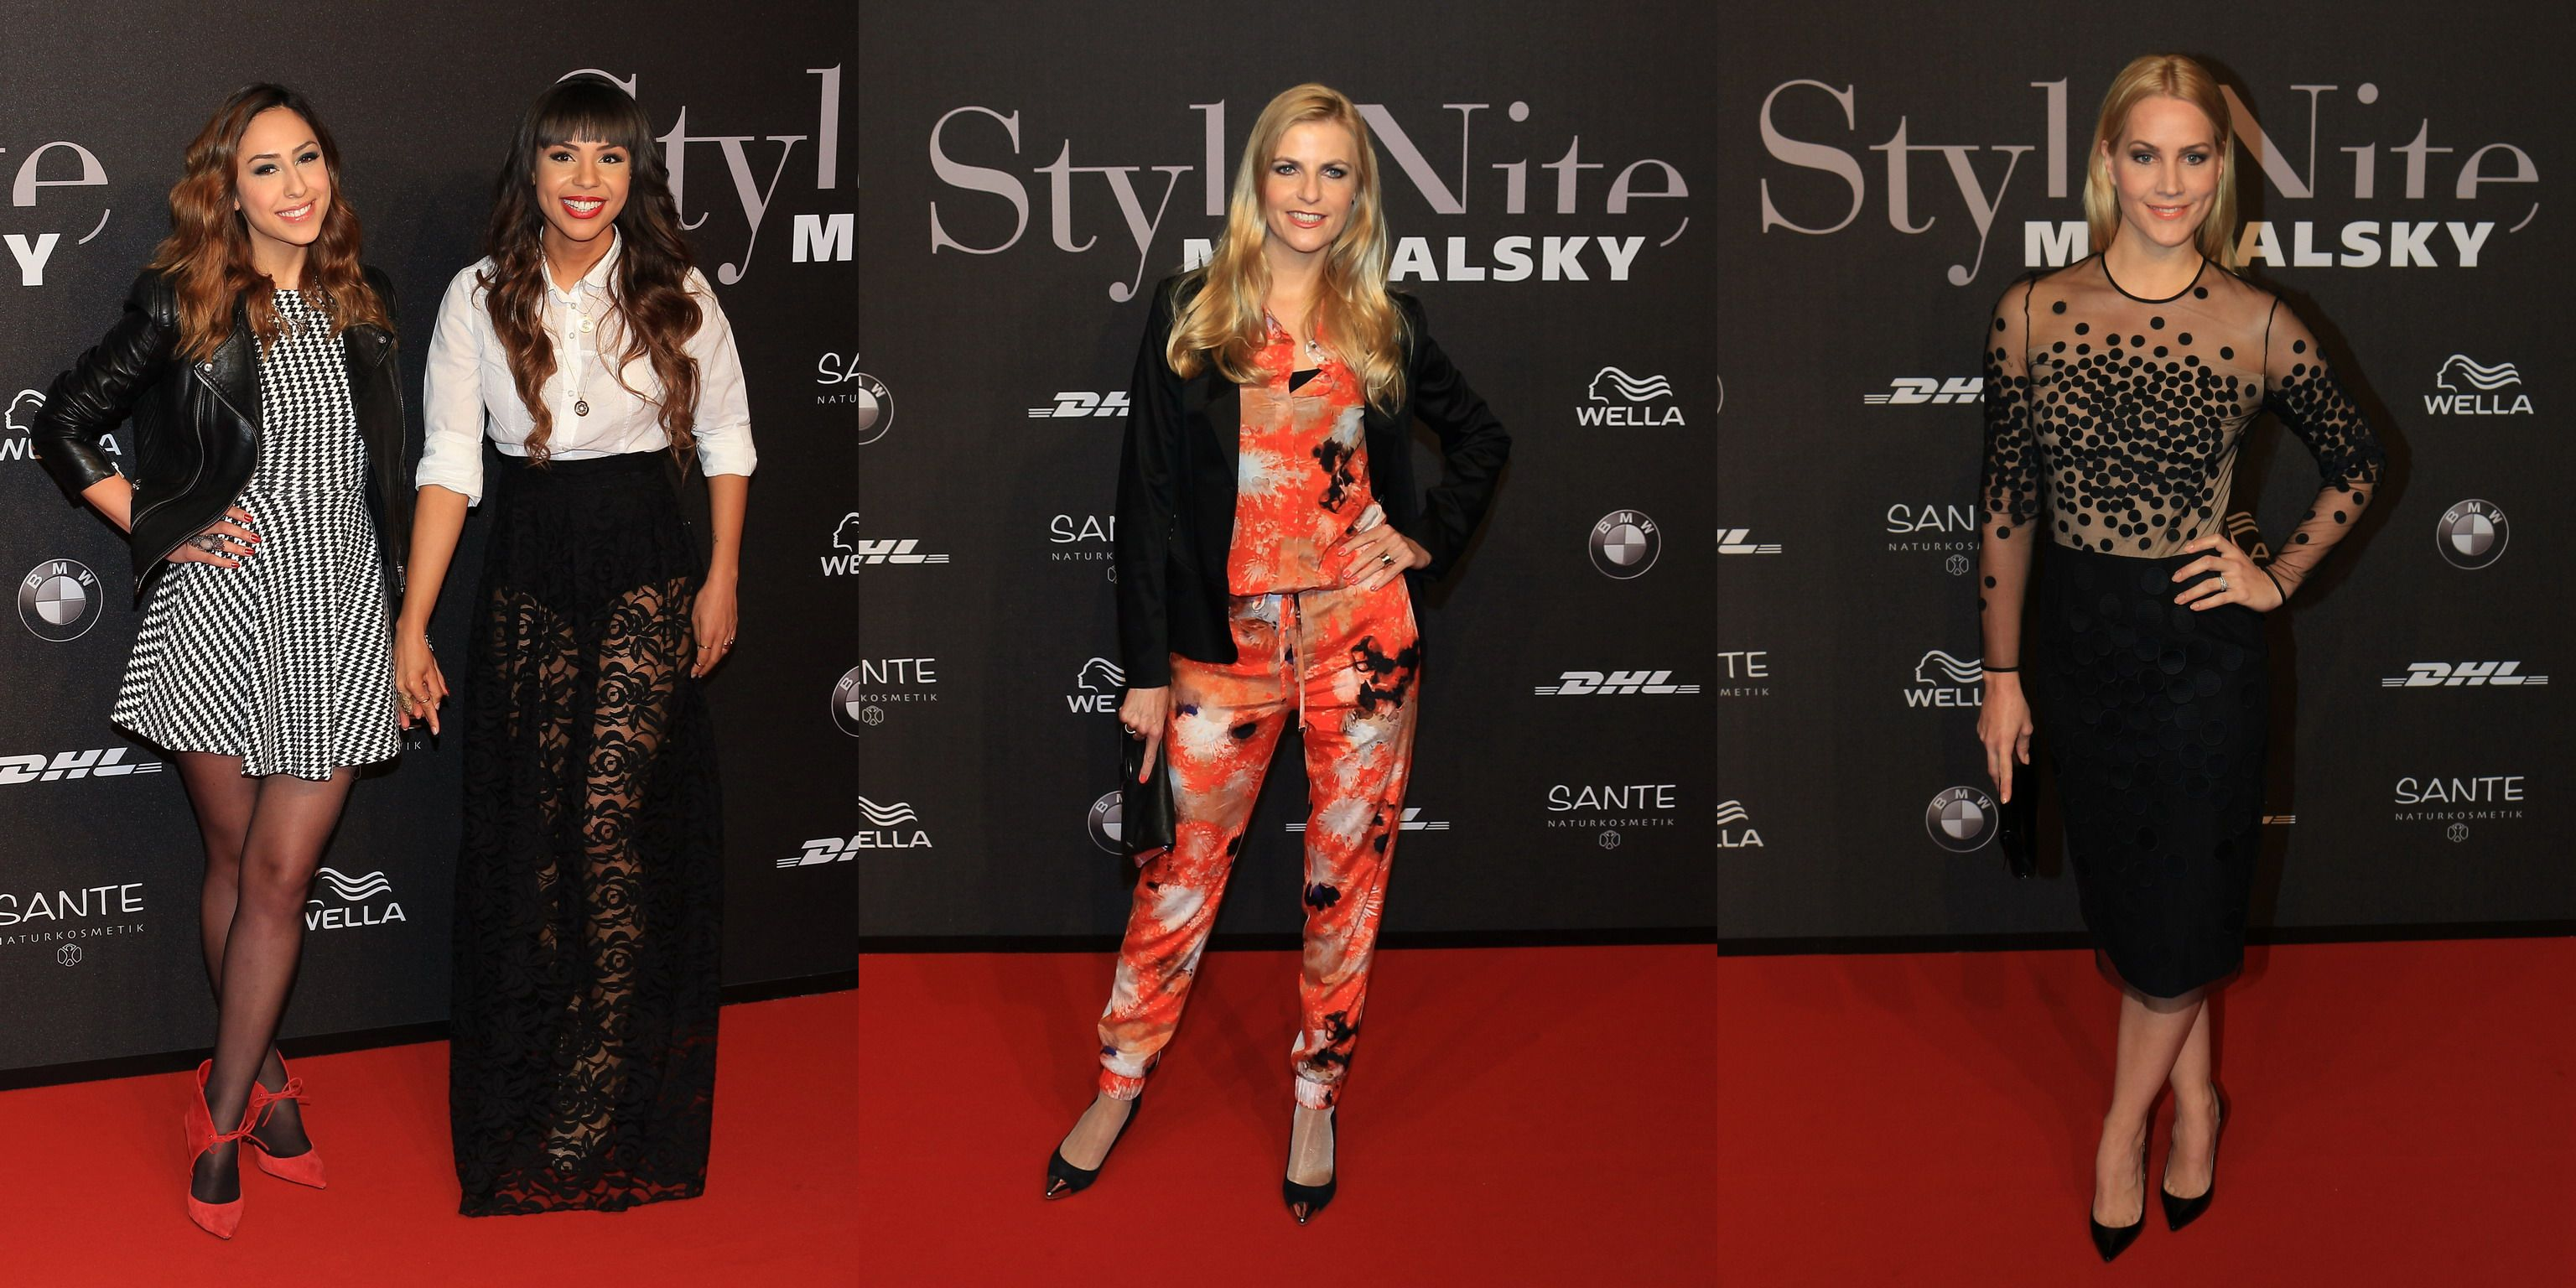 Michalsky Stylenite 2014  City Love am 17. Januar 2014